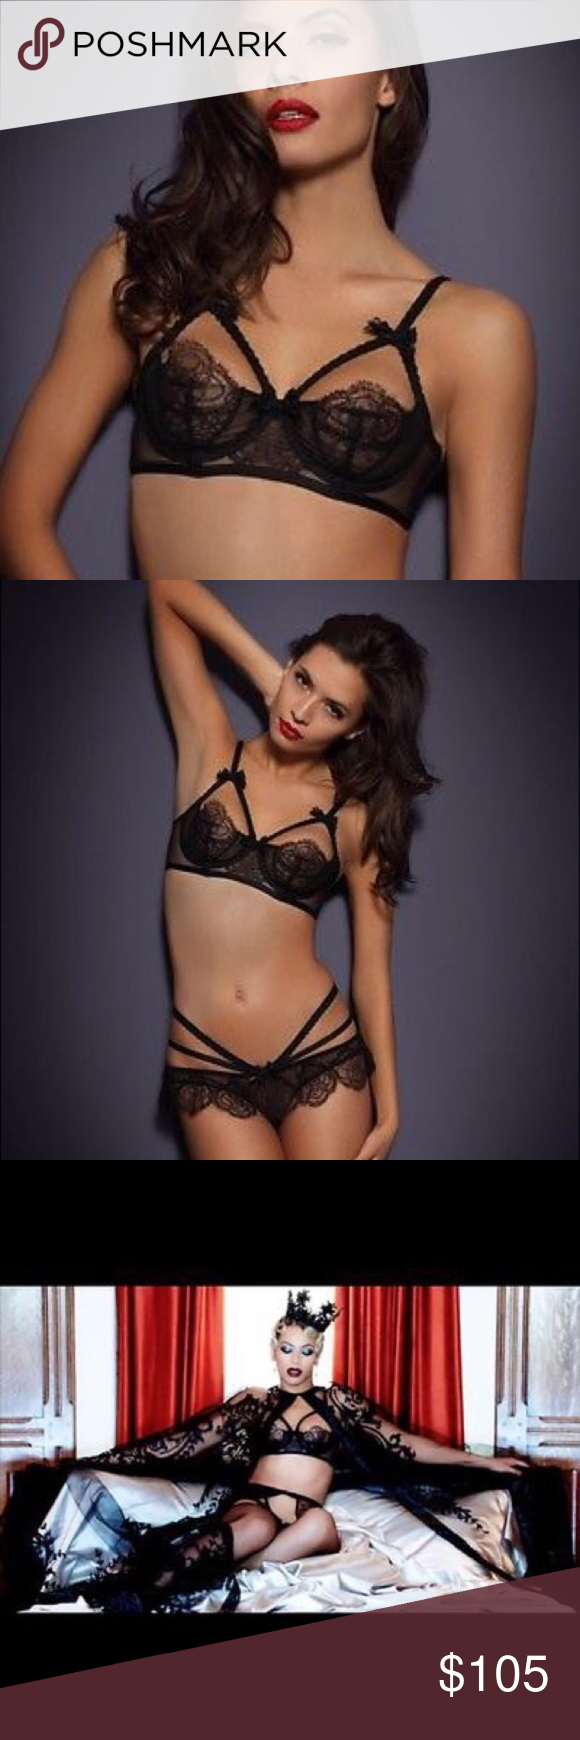 NWT Agent Provocateur ALINA Super Sexy Bra ALL REASONABLE OFFERS ARE  WELCOMED The Alina bra is 604c21fe6